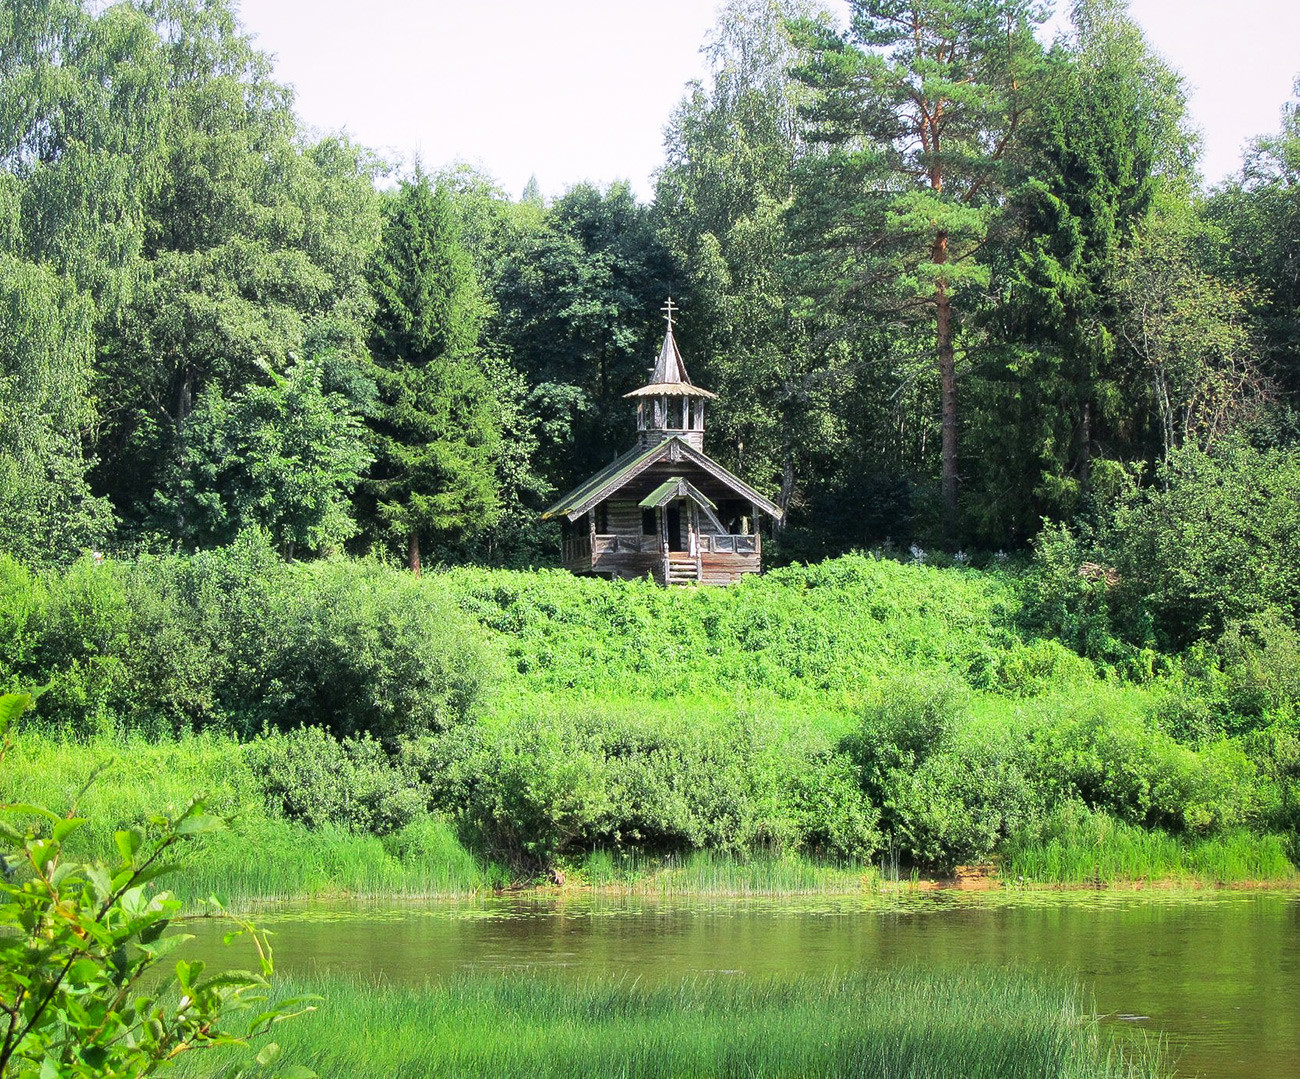 Tikhvin Chapel, village of Bolshoe Pekhovo (River Msta), Novgorod Region, 17th century